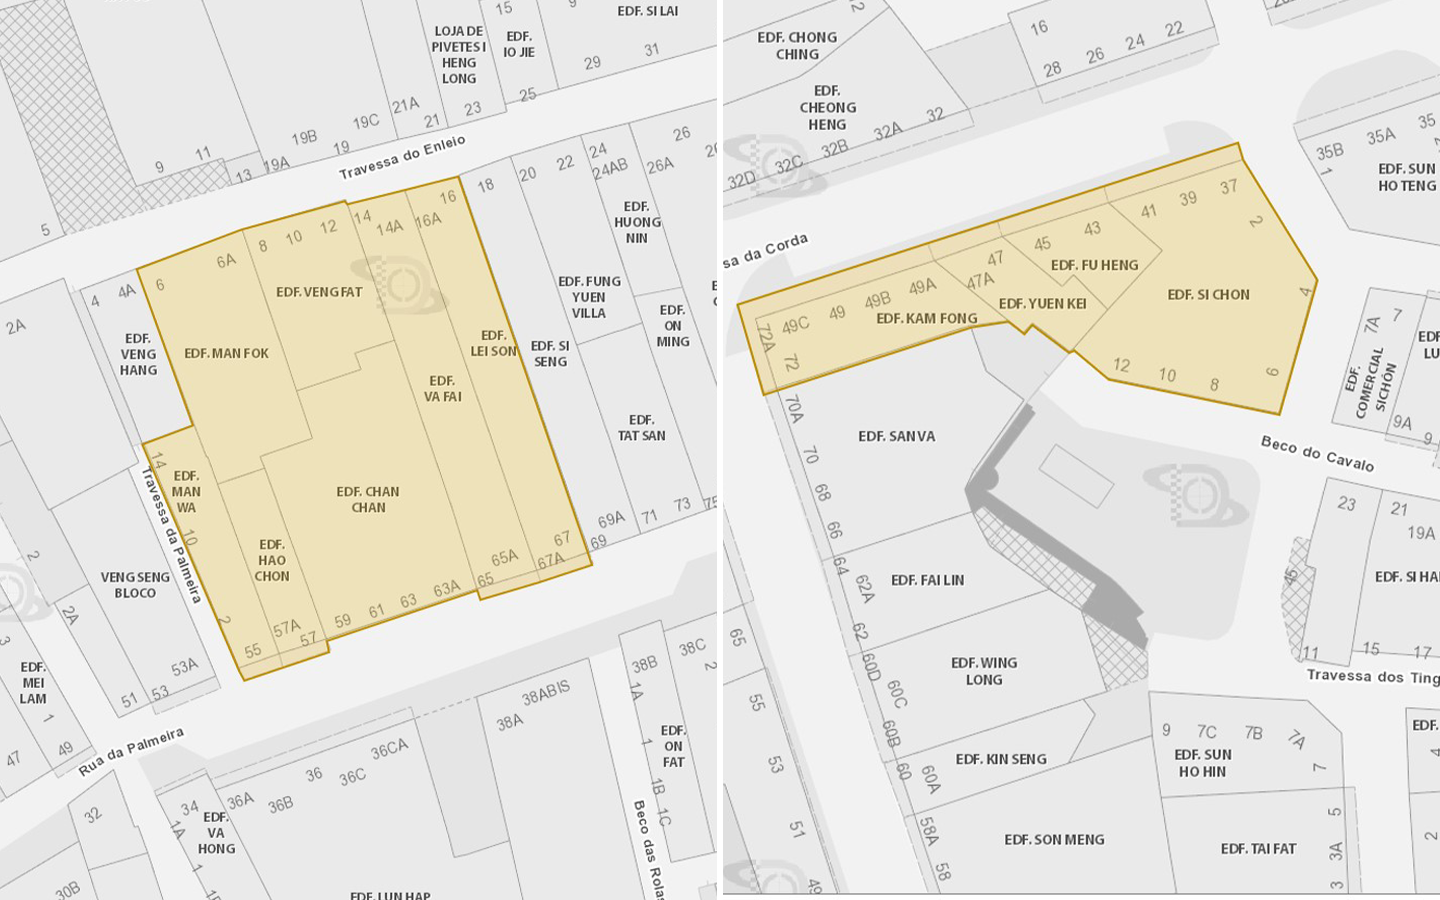 Macau 69th and 70th cases yellow code zone